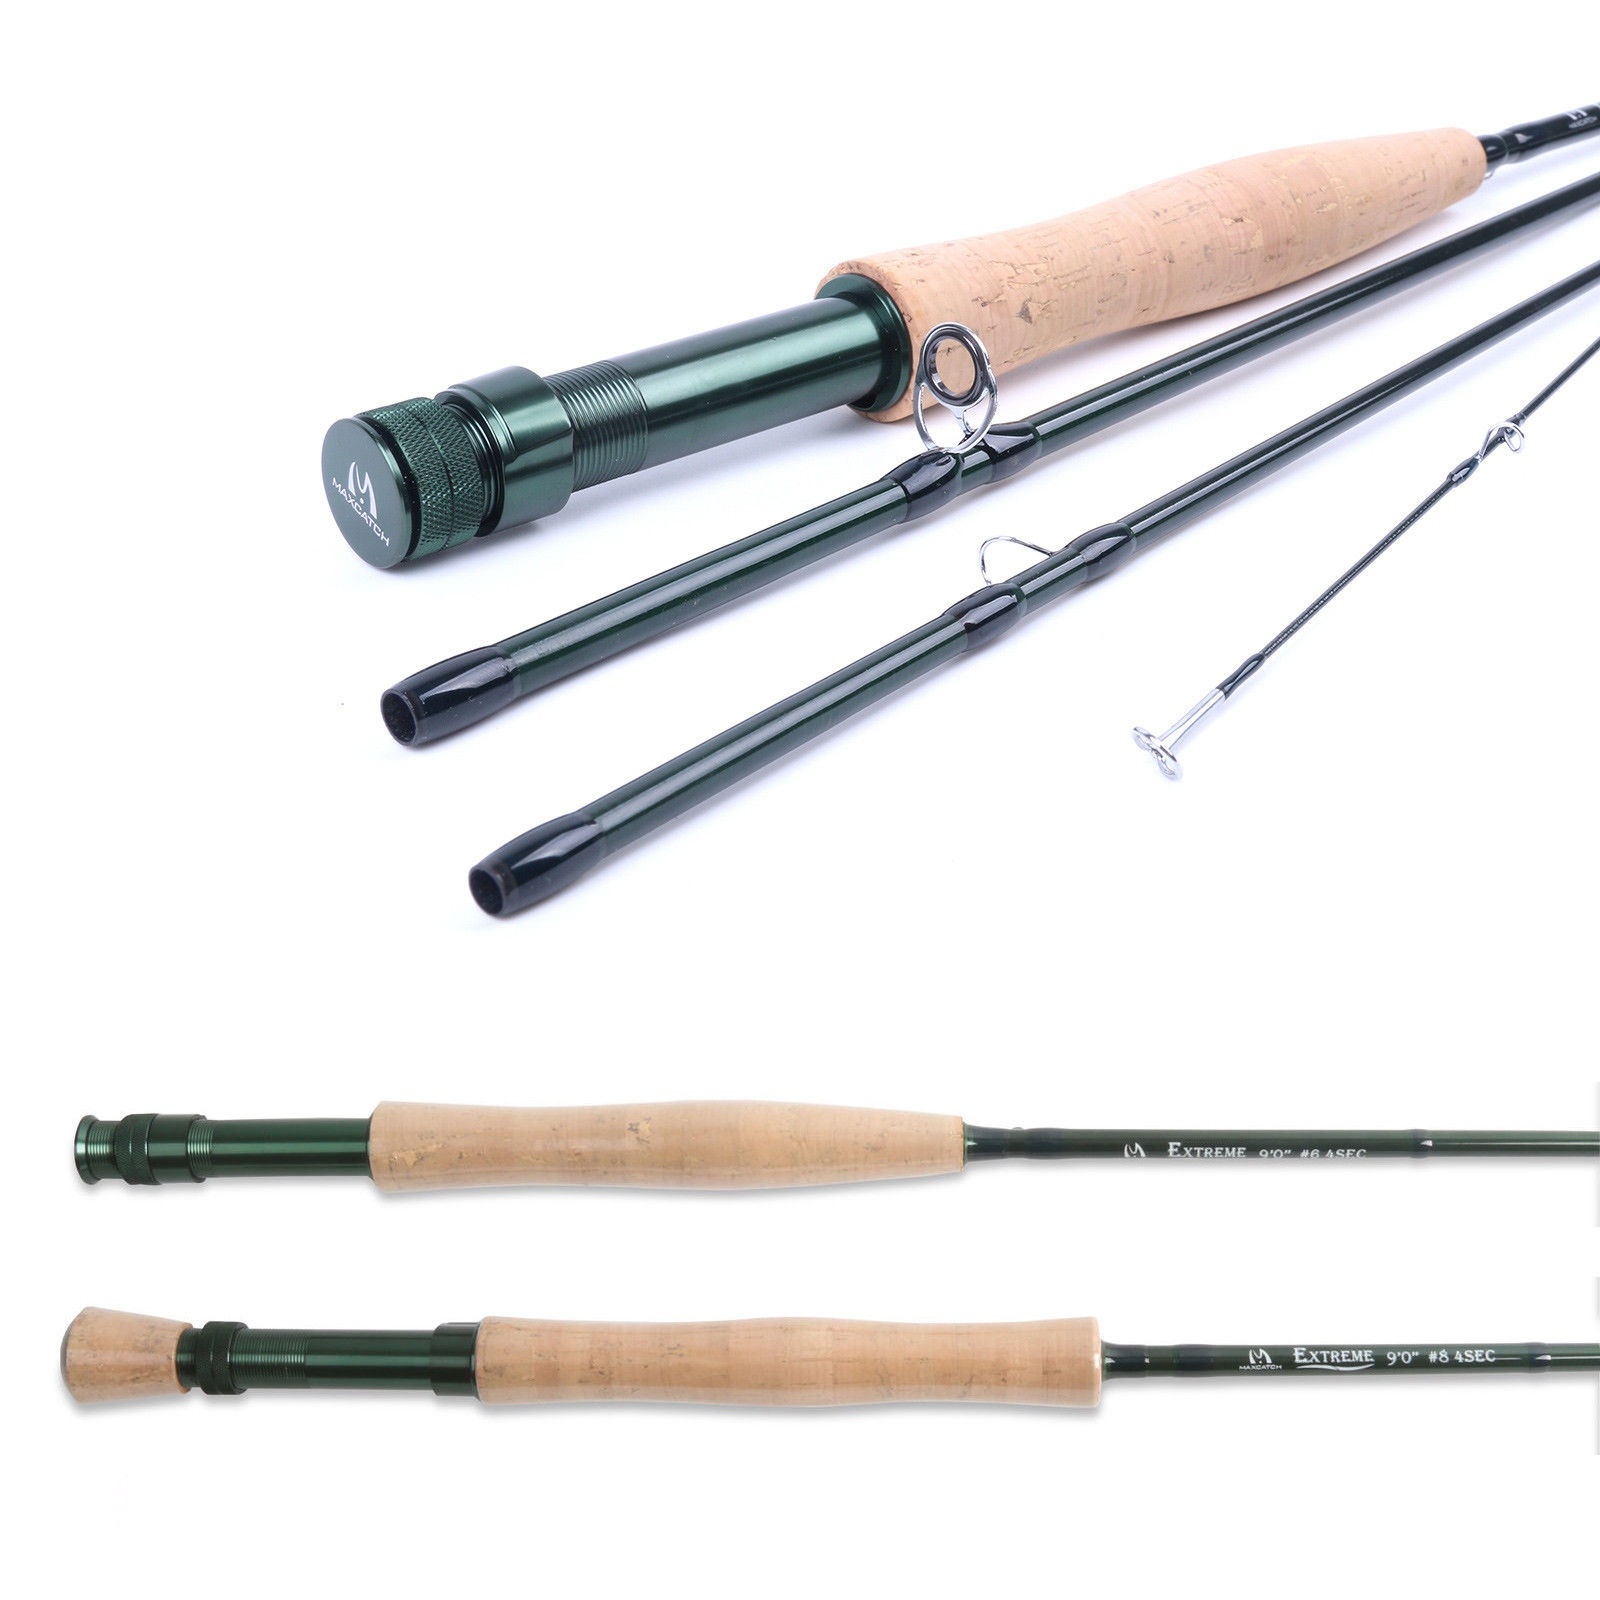 3-10WT Fly Rod Graphite IM8 Medium-fast Fly Fishing Rod Tube